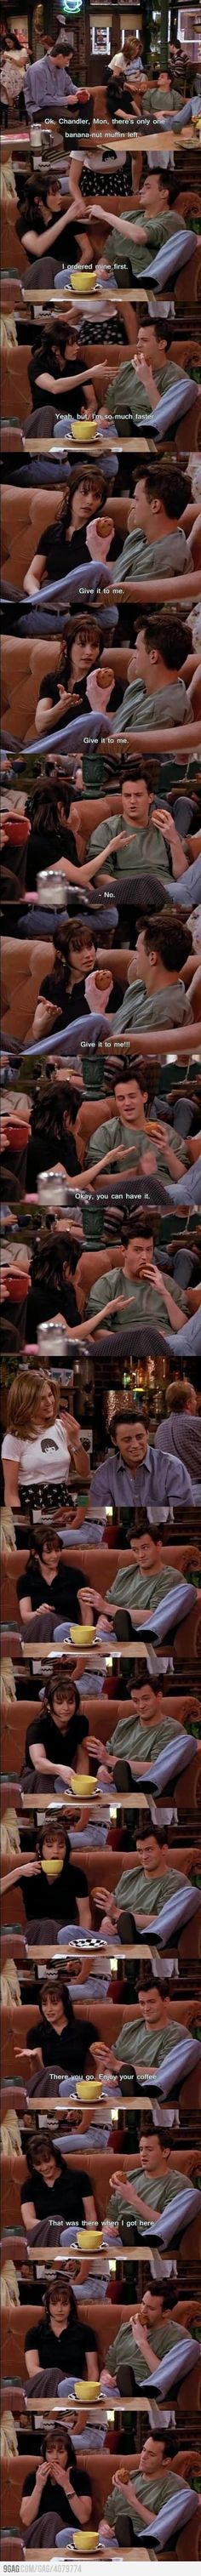 Monica & Chandler This Friends tv show quote is so funny. I can't stop laughing. | Friends tv show Humor | Friends tv show Funny | Friends tv show Meme | friends tv show | Chandler Bing Quotes |